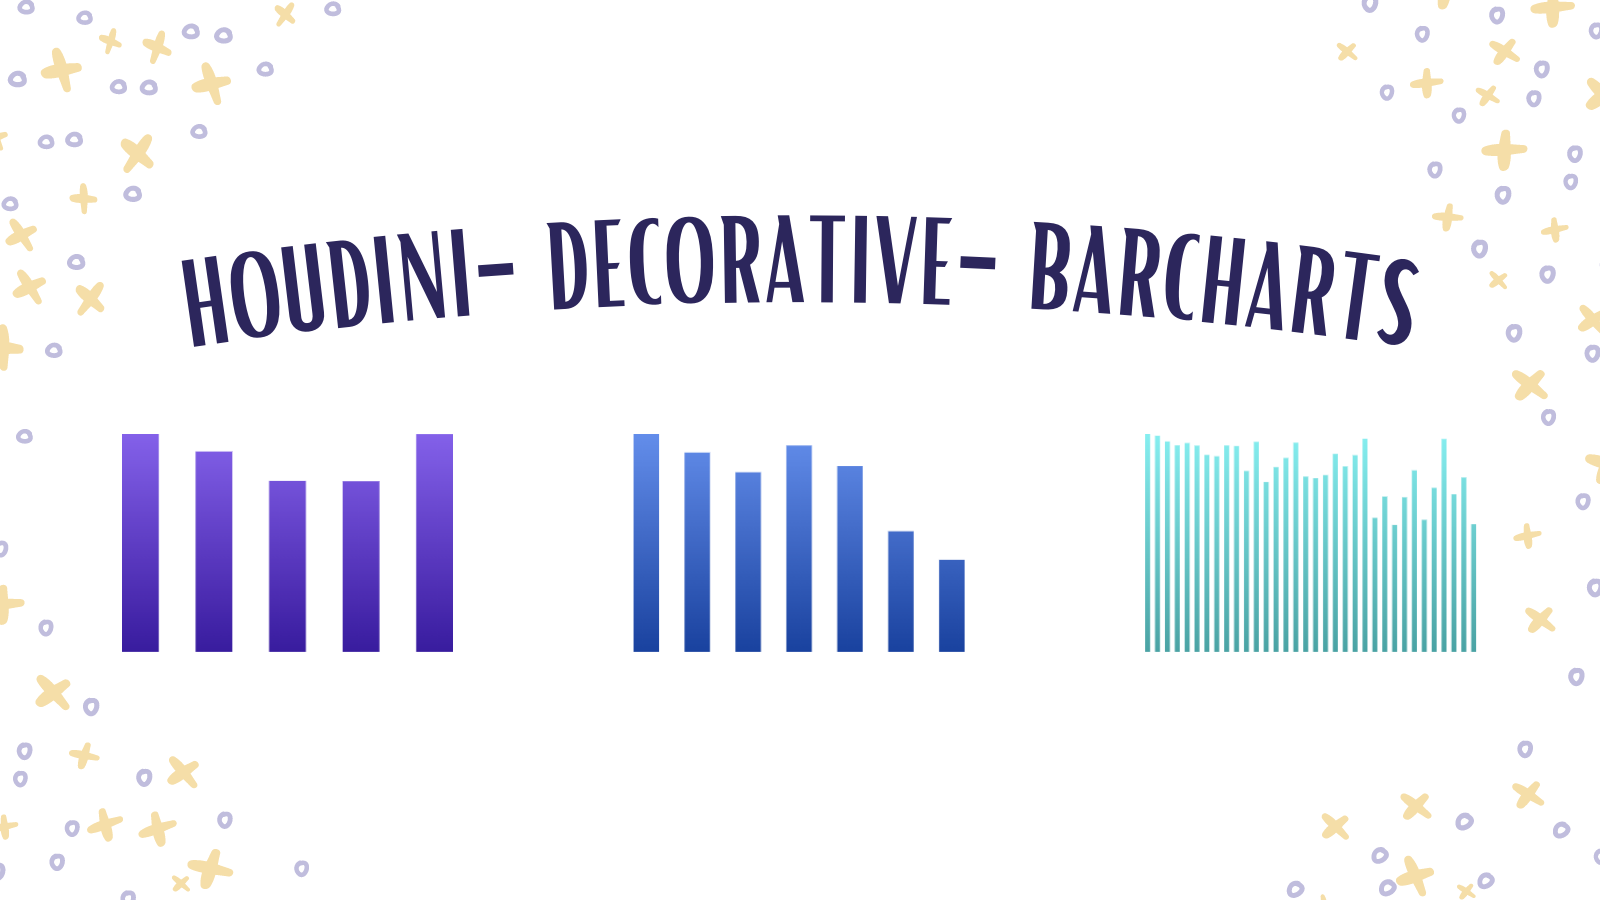 Preview of generated bar charts, in shades of purple, blue, and seafoam with various numbers of bars